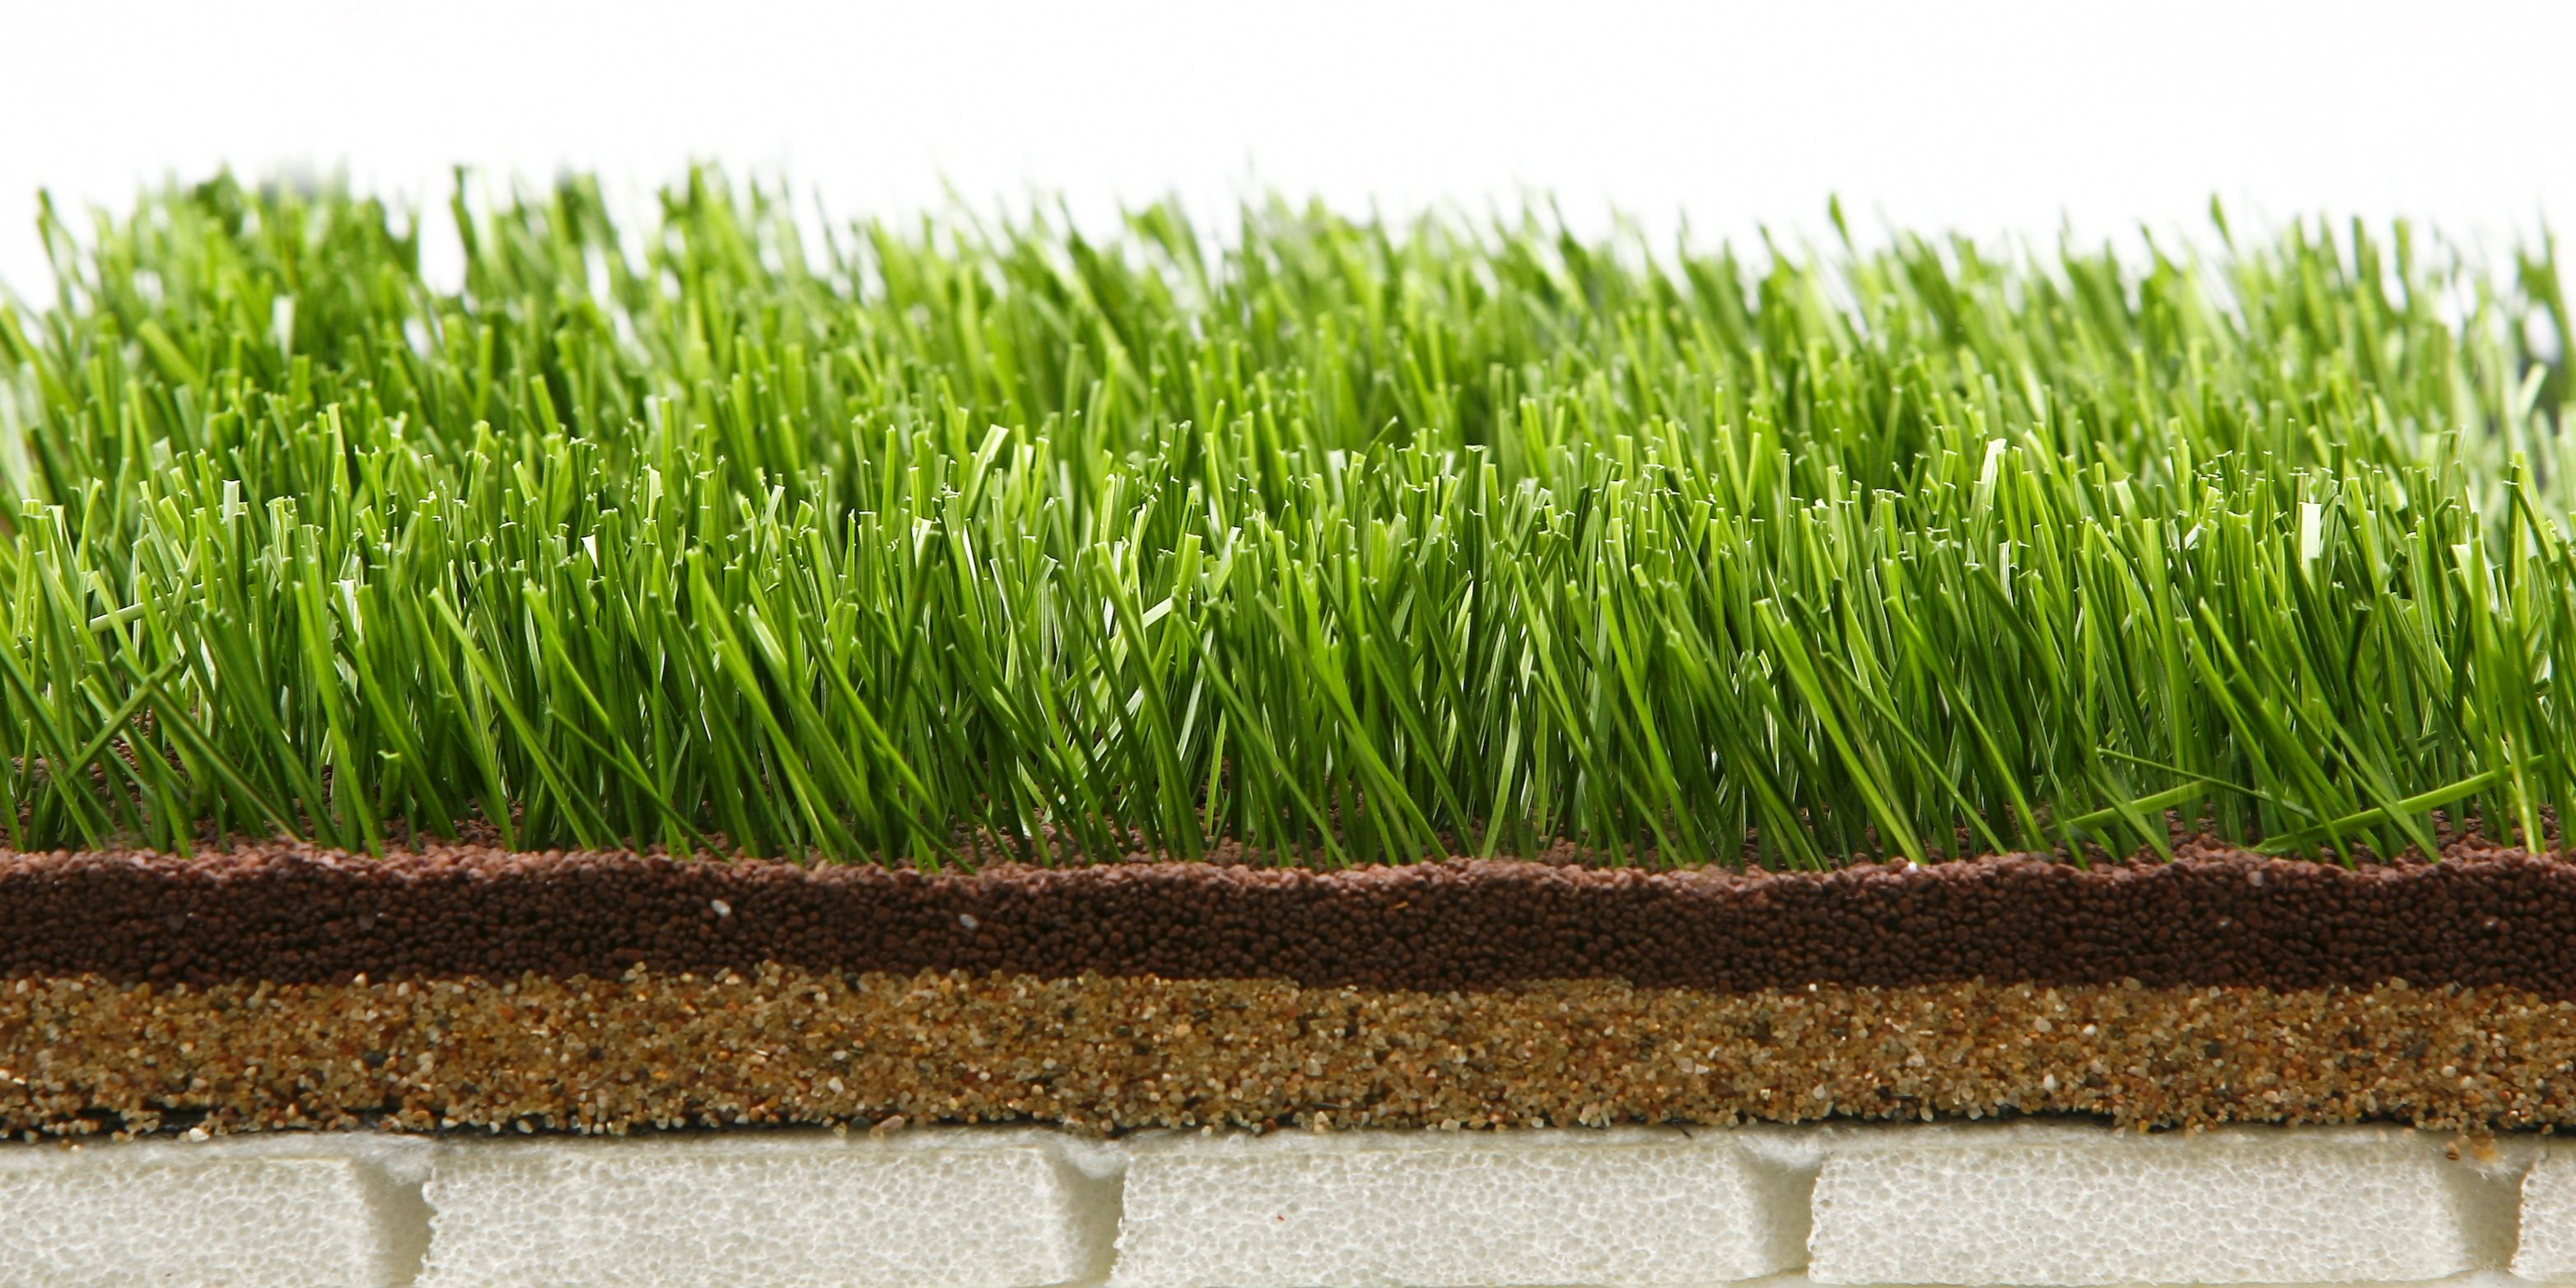 Advantages And Disadvantages Of Playing Soccer On The Turf